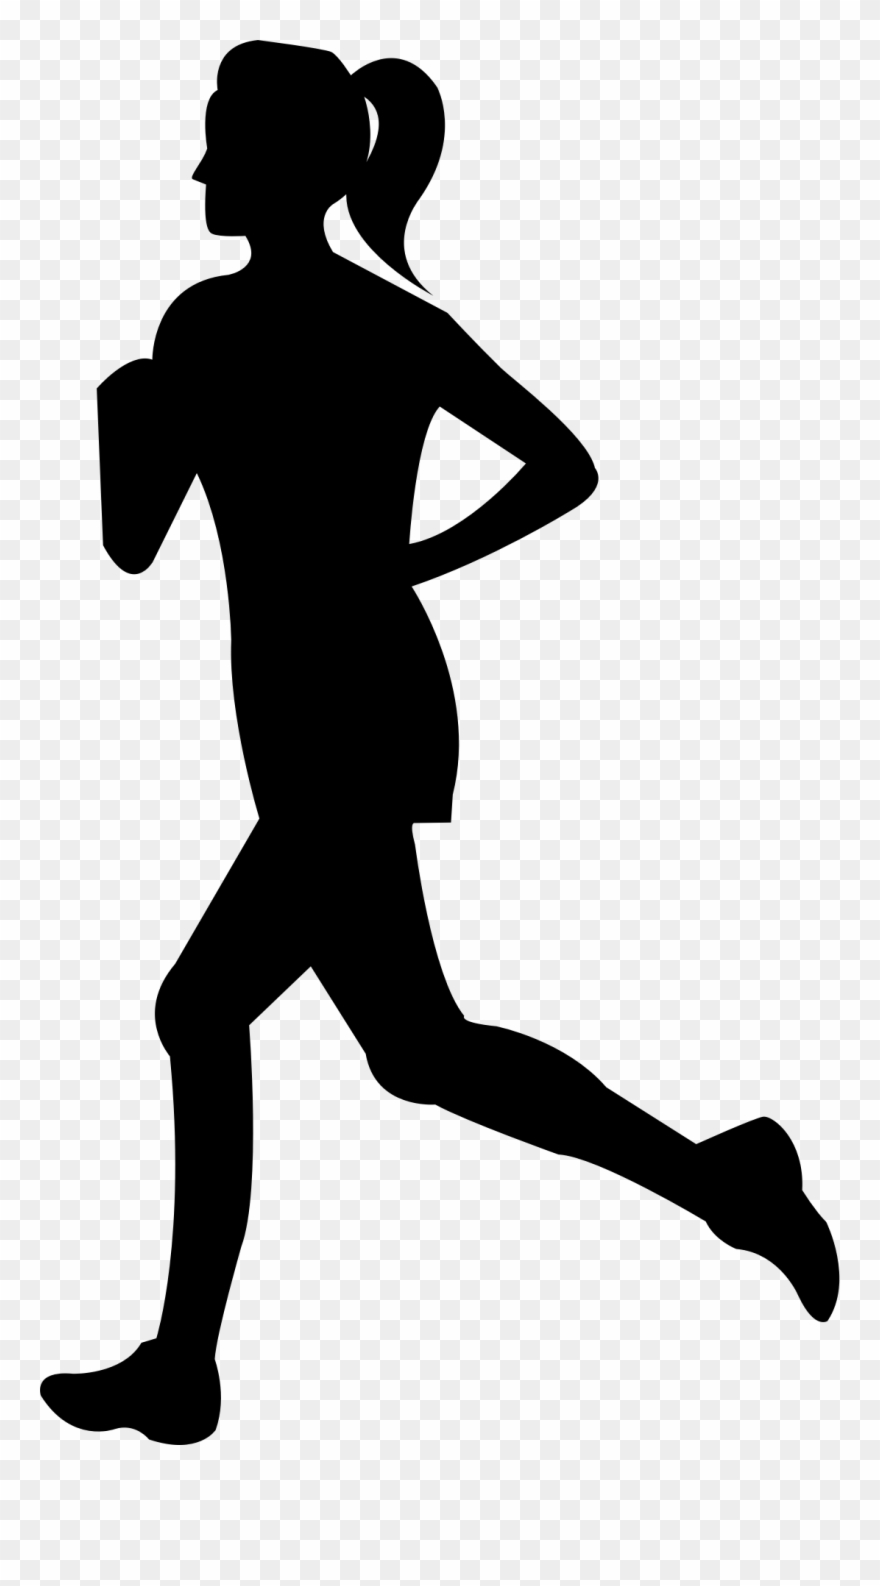 Free Clip Art Of Person Running Clipart Silhouette.